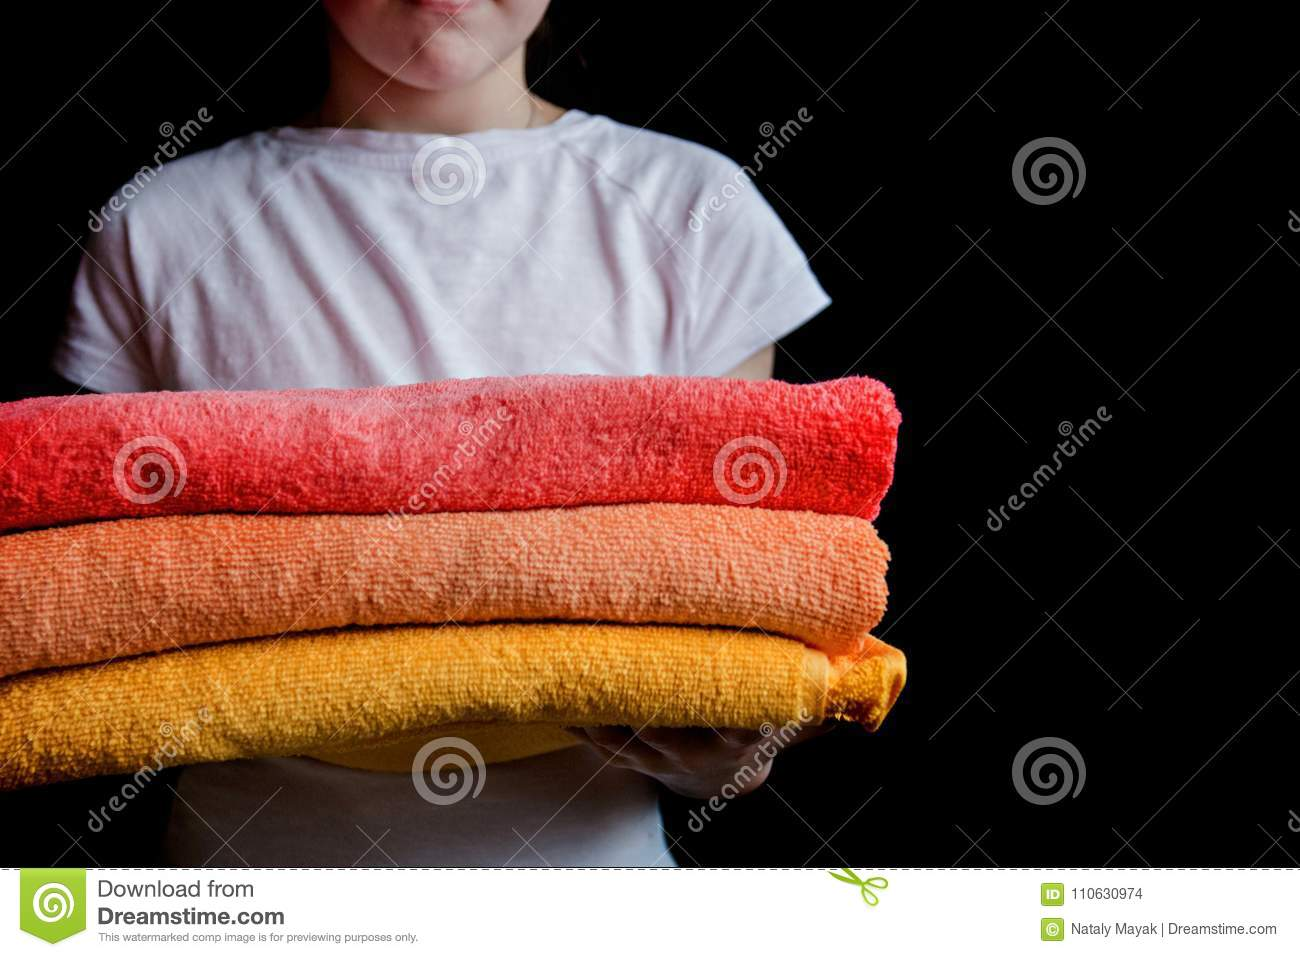 A girl holds towels in their hands